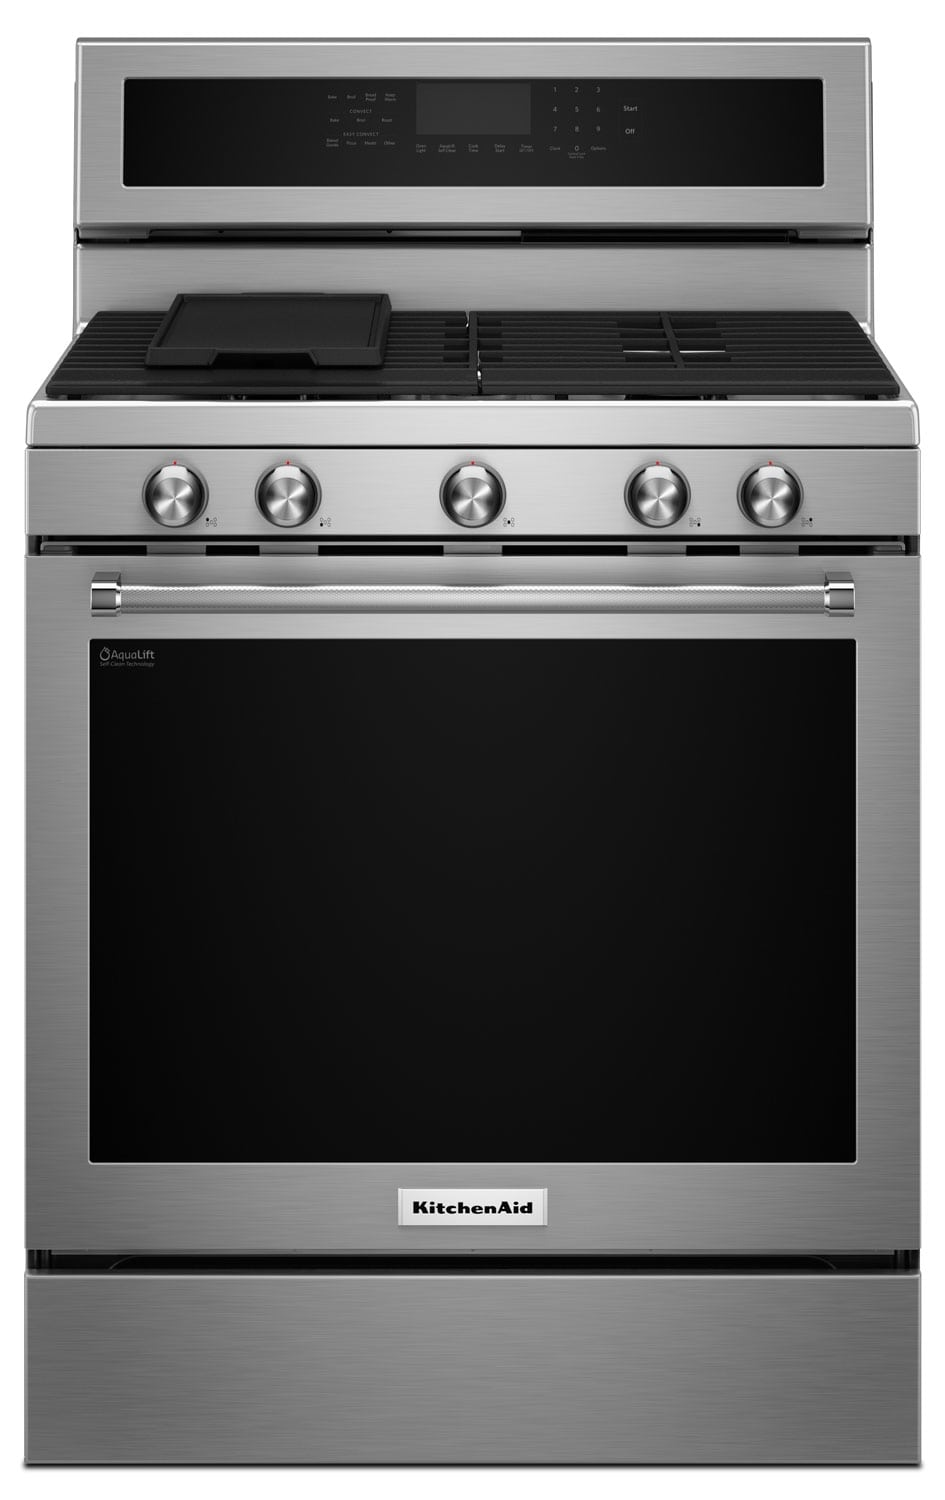 Cooking Products - KitchenAid Stainless Steel Freestanding Gas Range (5.8 Cu. Ft.) - KFGG500ESS